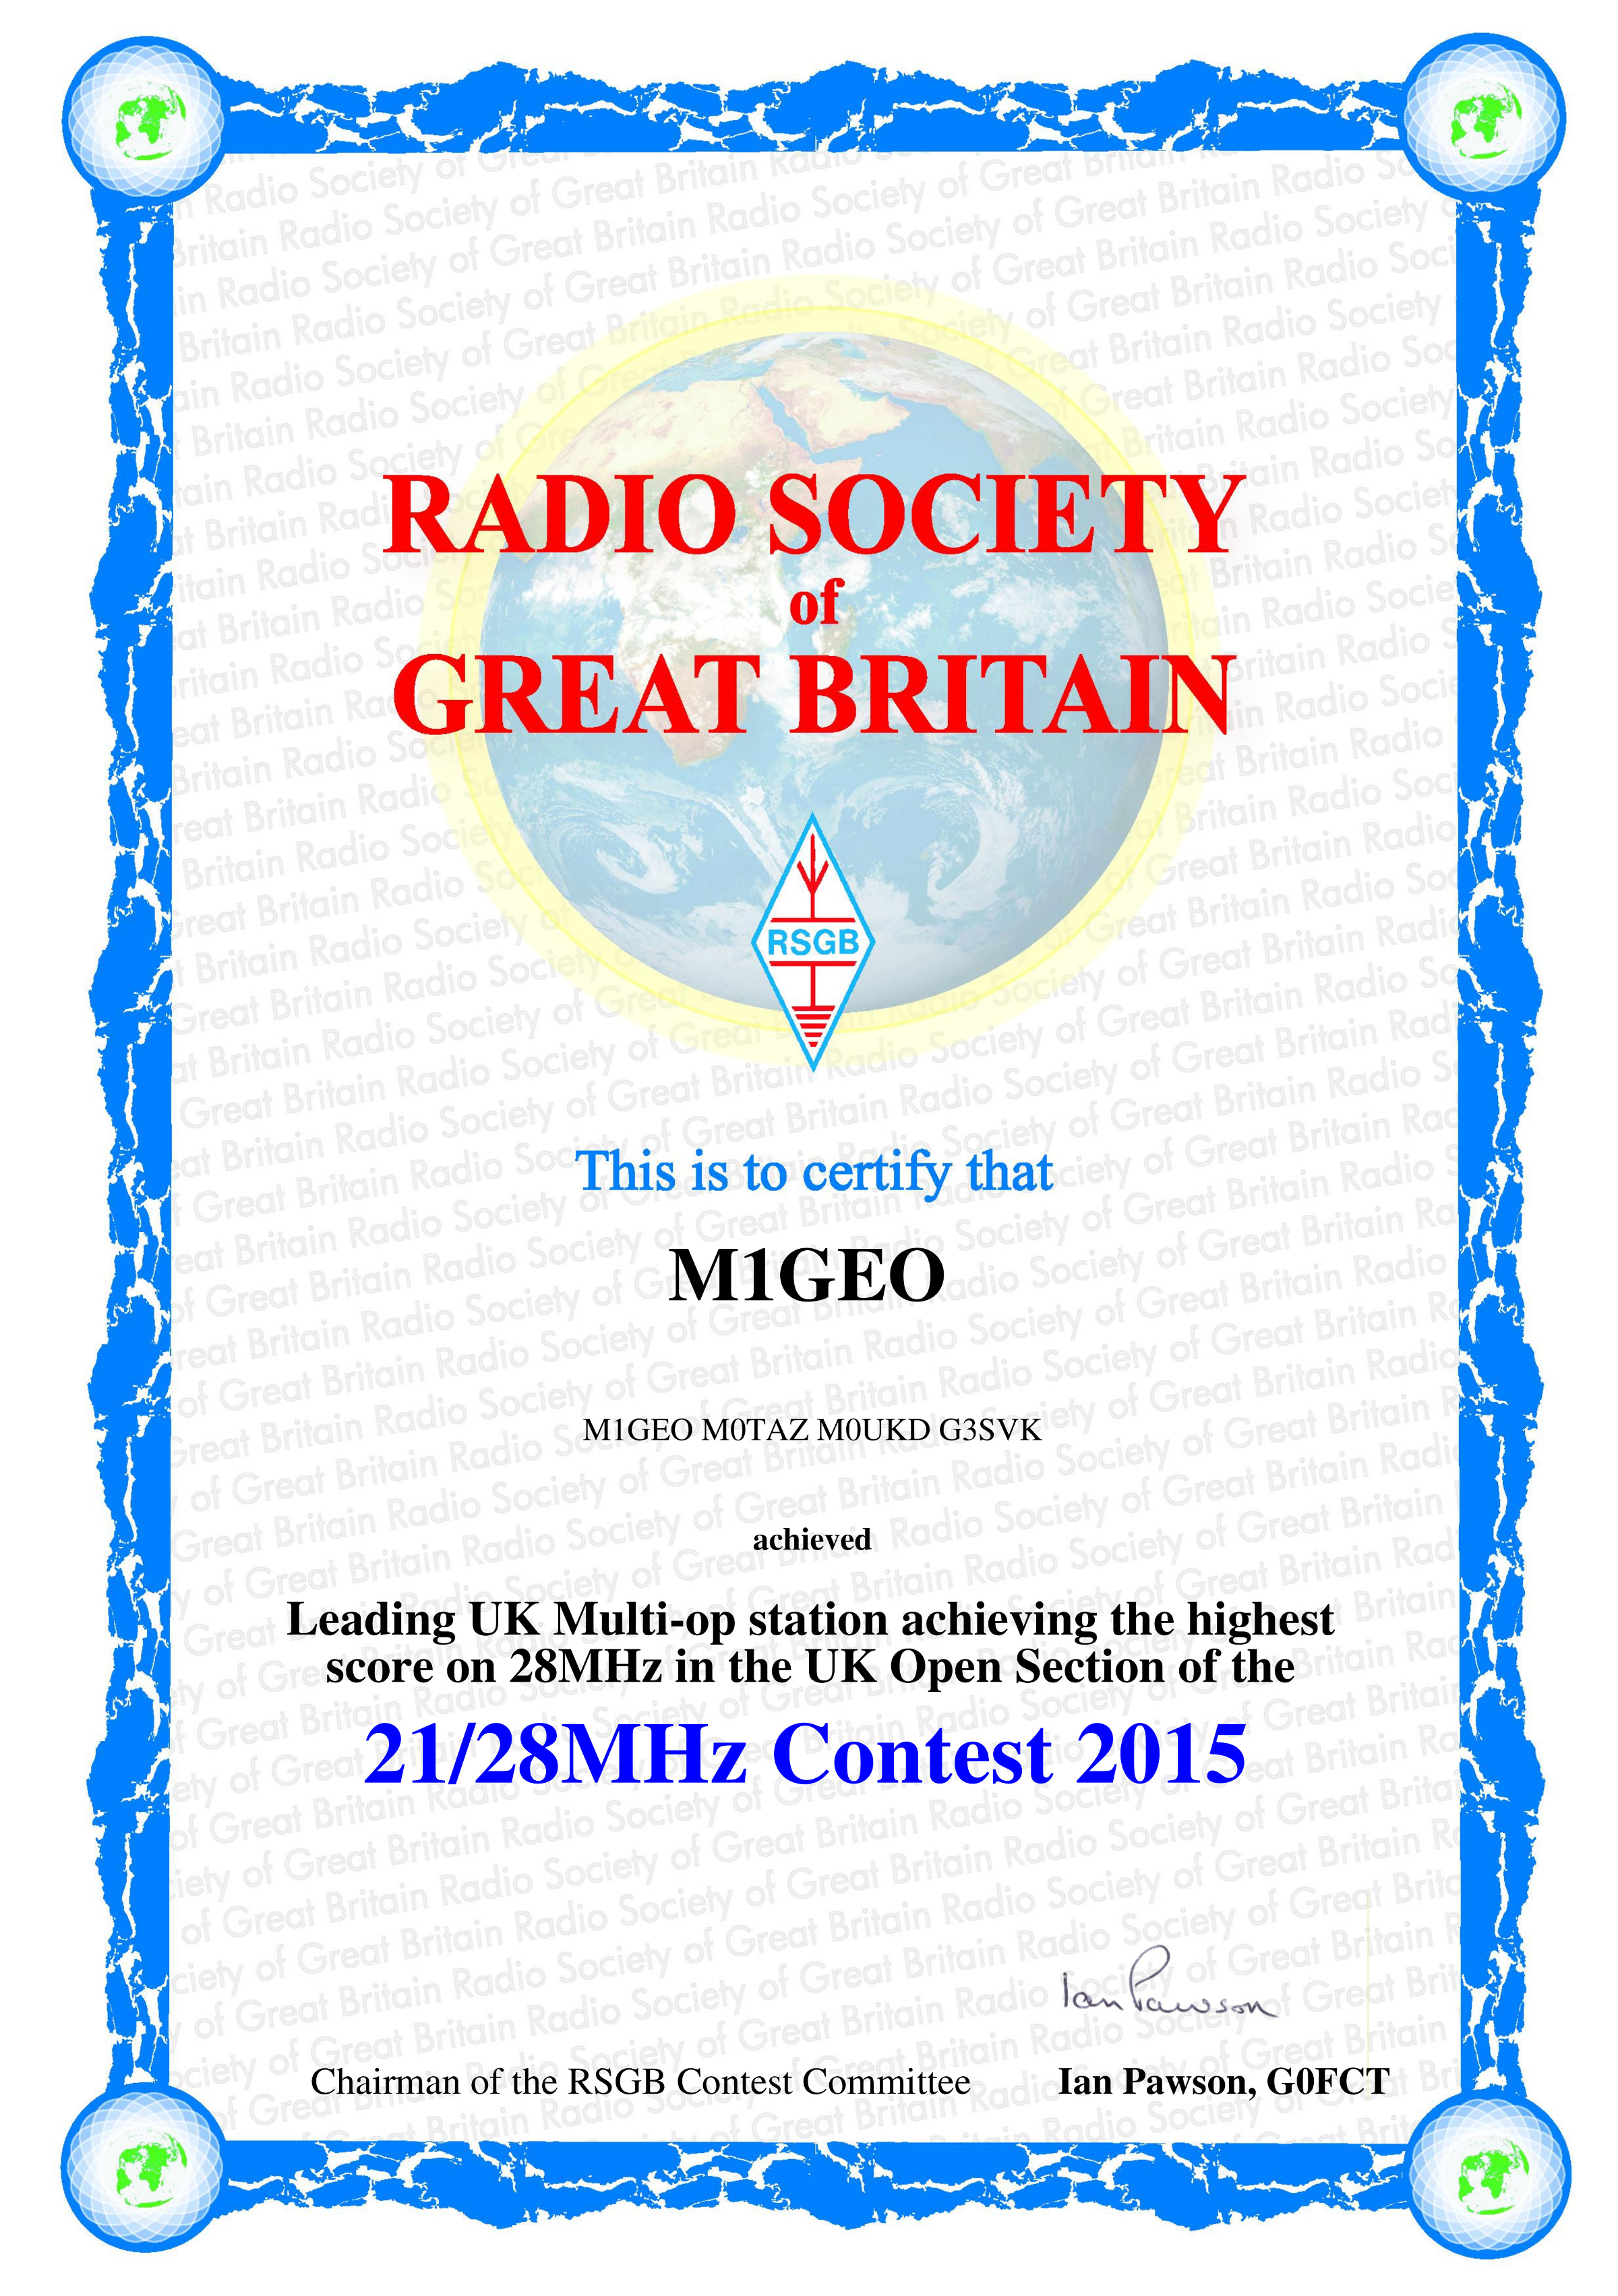 Powditch Trophy: Leading UK Multi-op station achieving the highest score on 28MHz